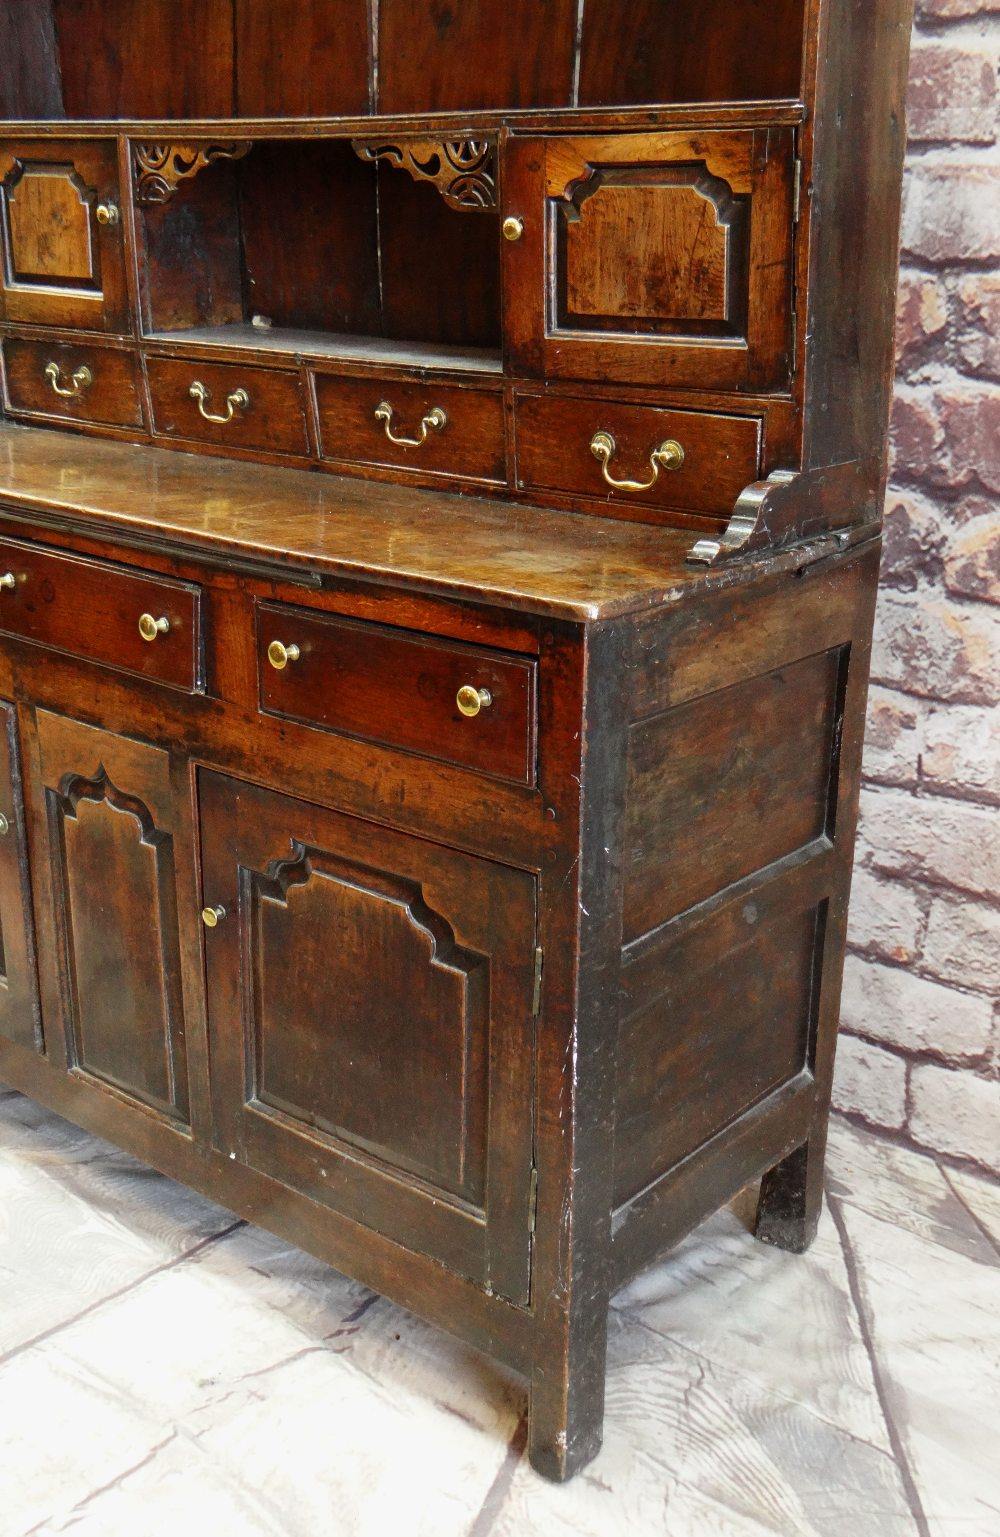 A SMALL CHARACTERFUL OAK NORTH WALES CUPBOARD-BASE WELSH DRESSER circa 1770-1800 having a base of - Image 9 of 26